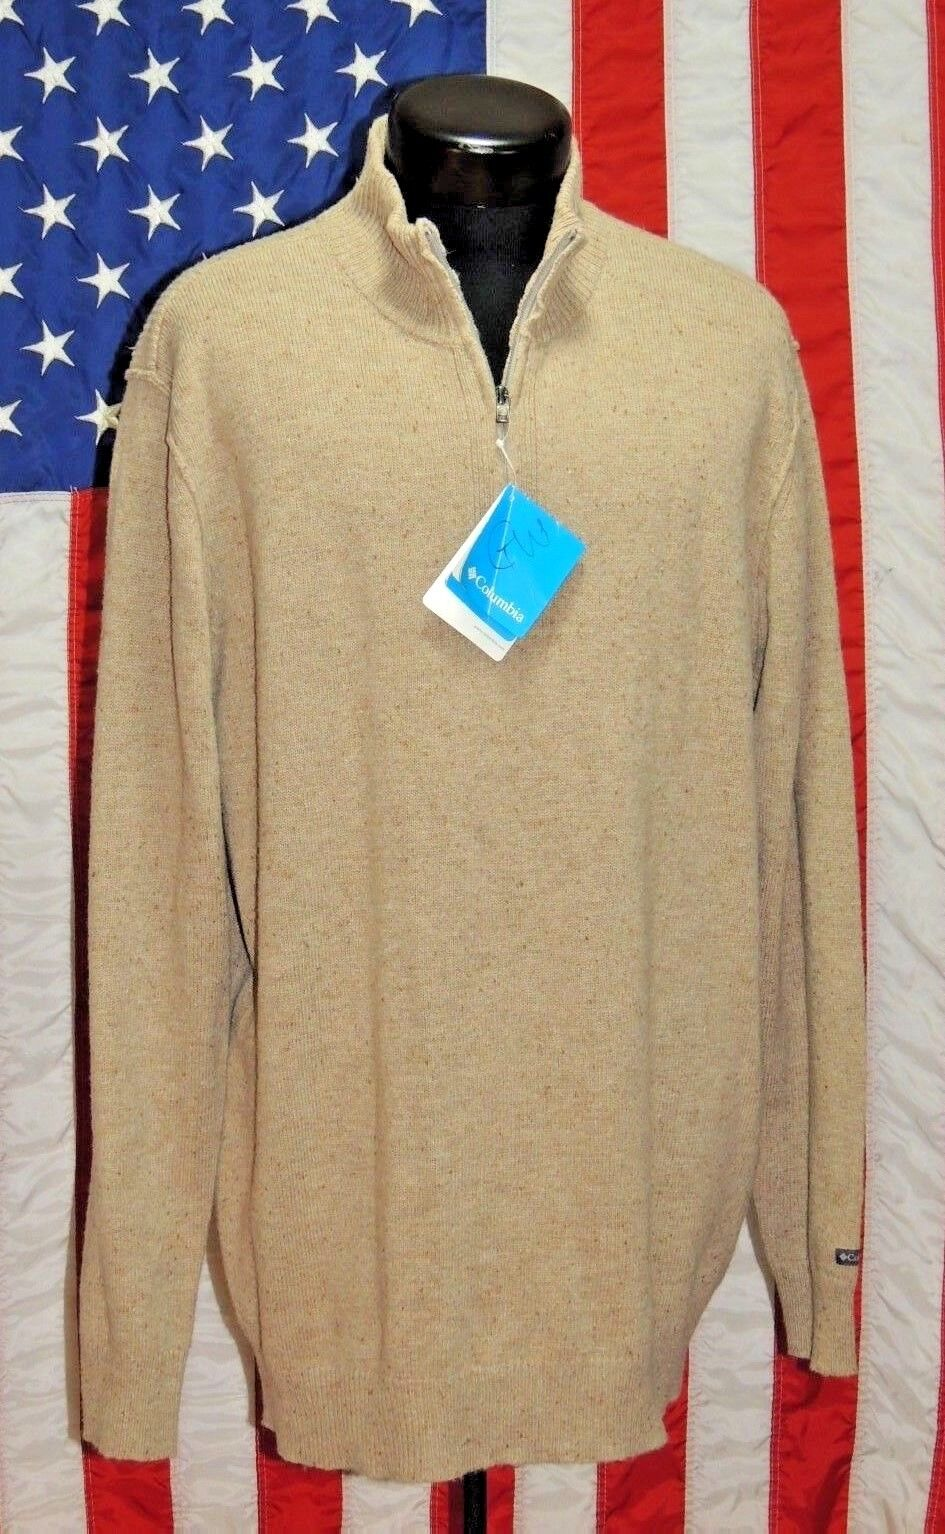 NWT Columbia Sportswear XL  Wool Blend Sweater Pull Over Tan 1 4 Zip Hiking Sweat  wholesale price and reliable quality